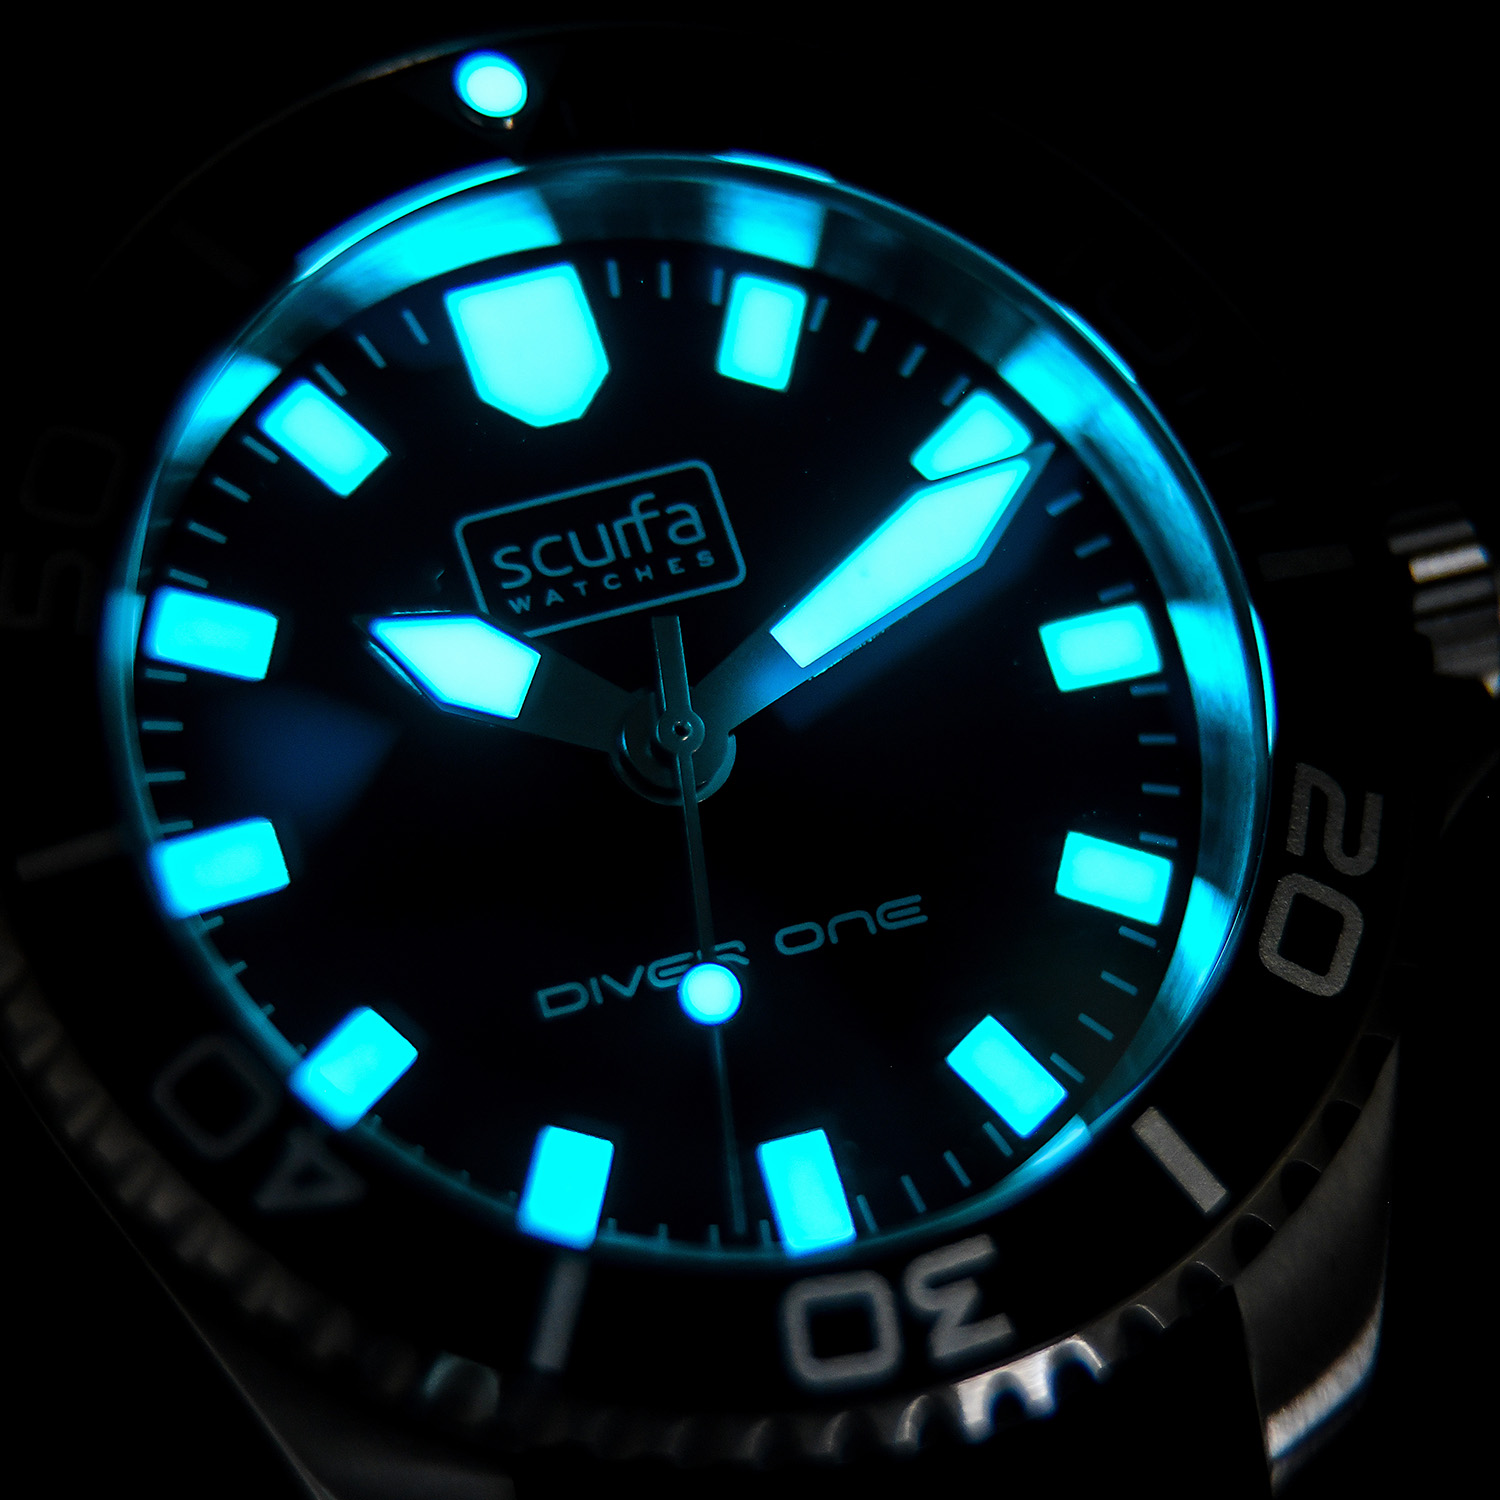 Diver One D1 500 Nd713 Black 10